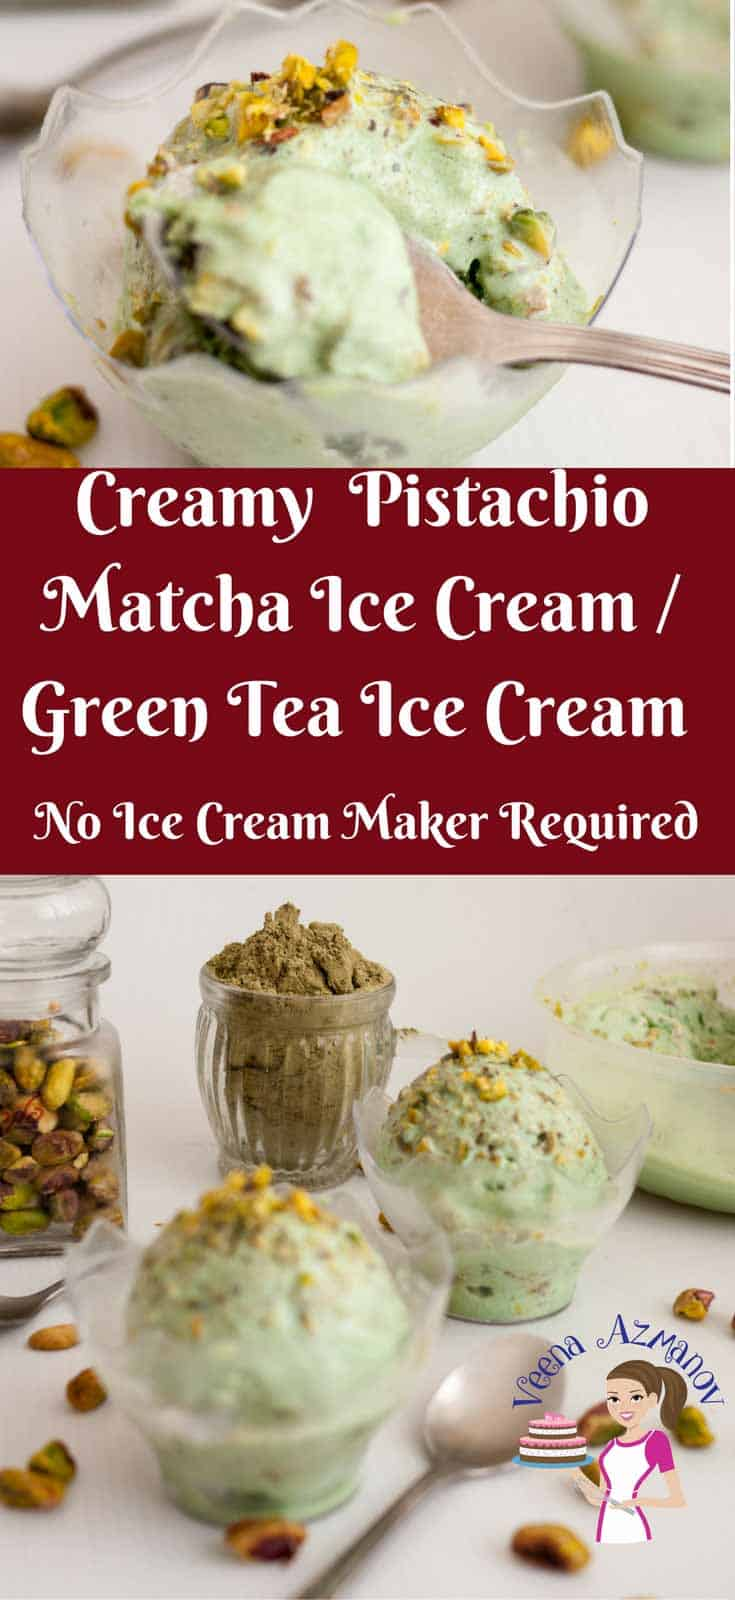 This deliciously creamy Japanese matcha green tea ice cream has a melt in the mouth texture. Unlike traditional match ice cream this is rich, creamy and flavored with pistachio nuts for that added crunch